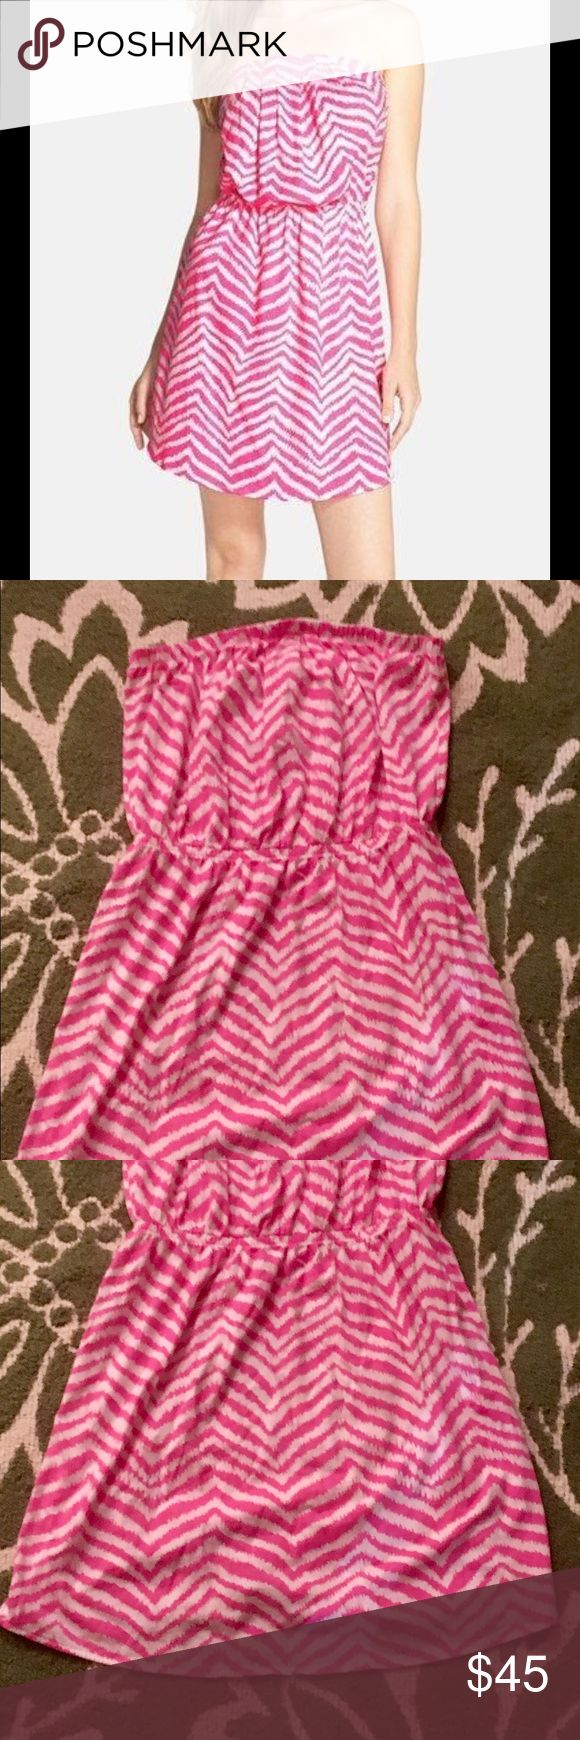 Lilly Pulitzer- Strapless Pink and White Dress Lilly Pulitzer- Strapless Pink and White Dress- Never Worn- Perfect Condition Lilly Pulitzer Dresses